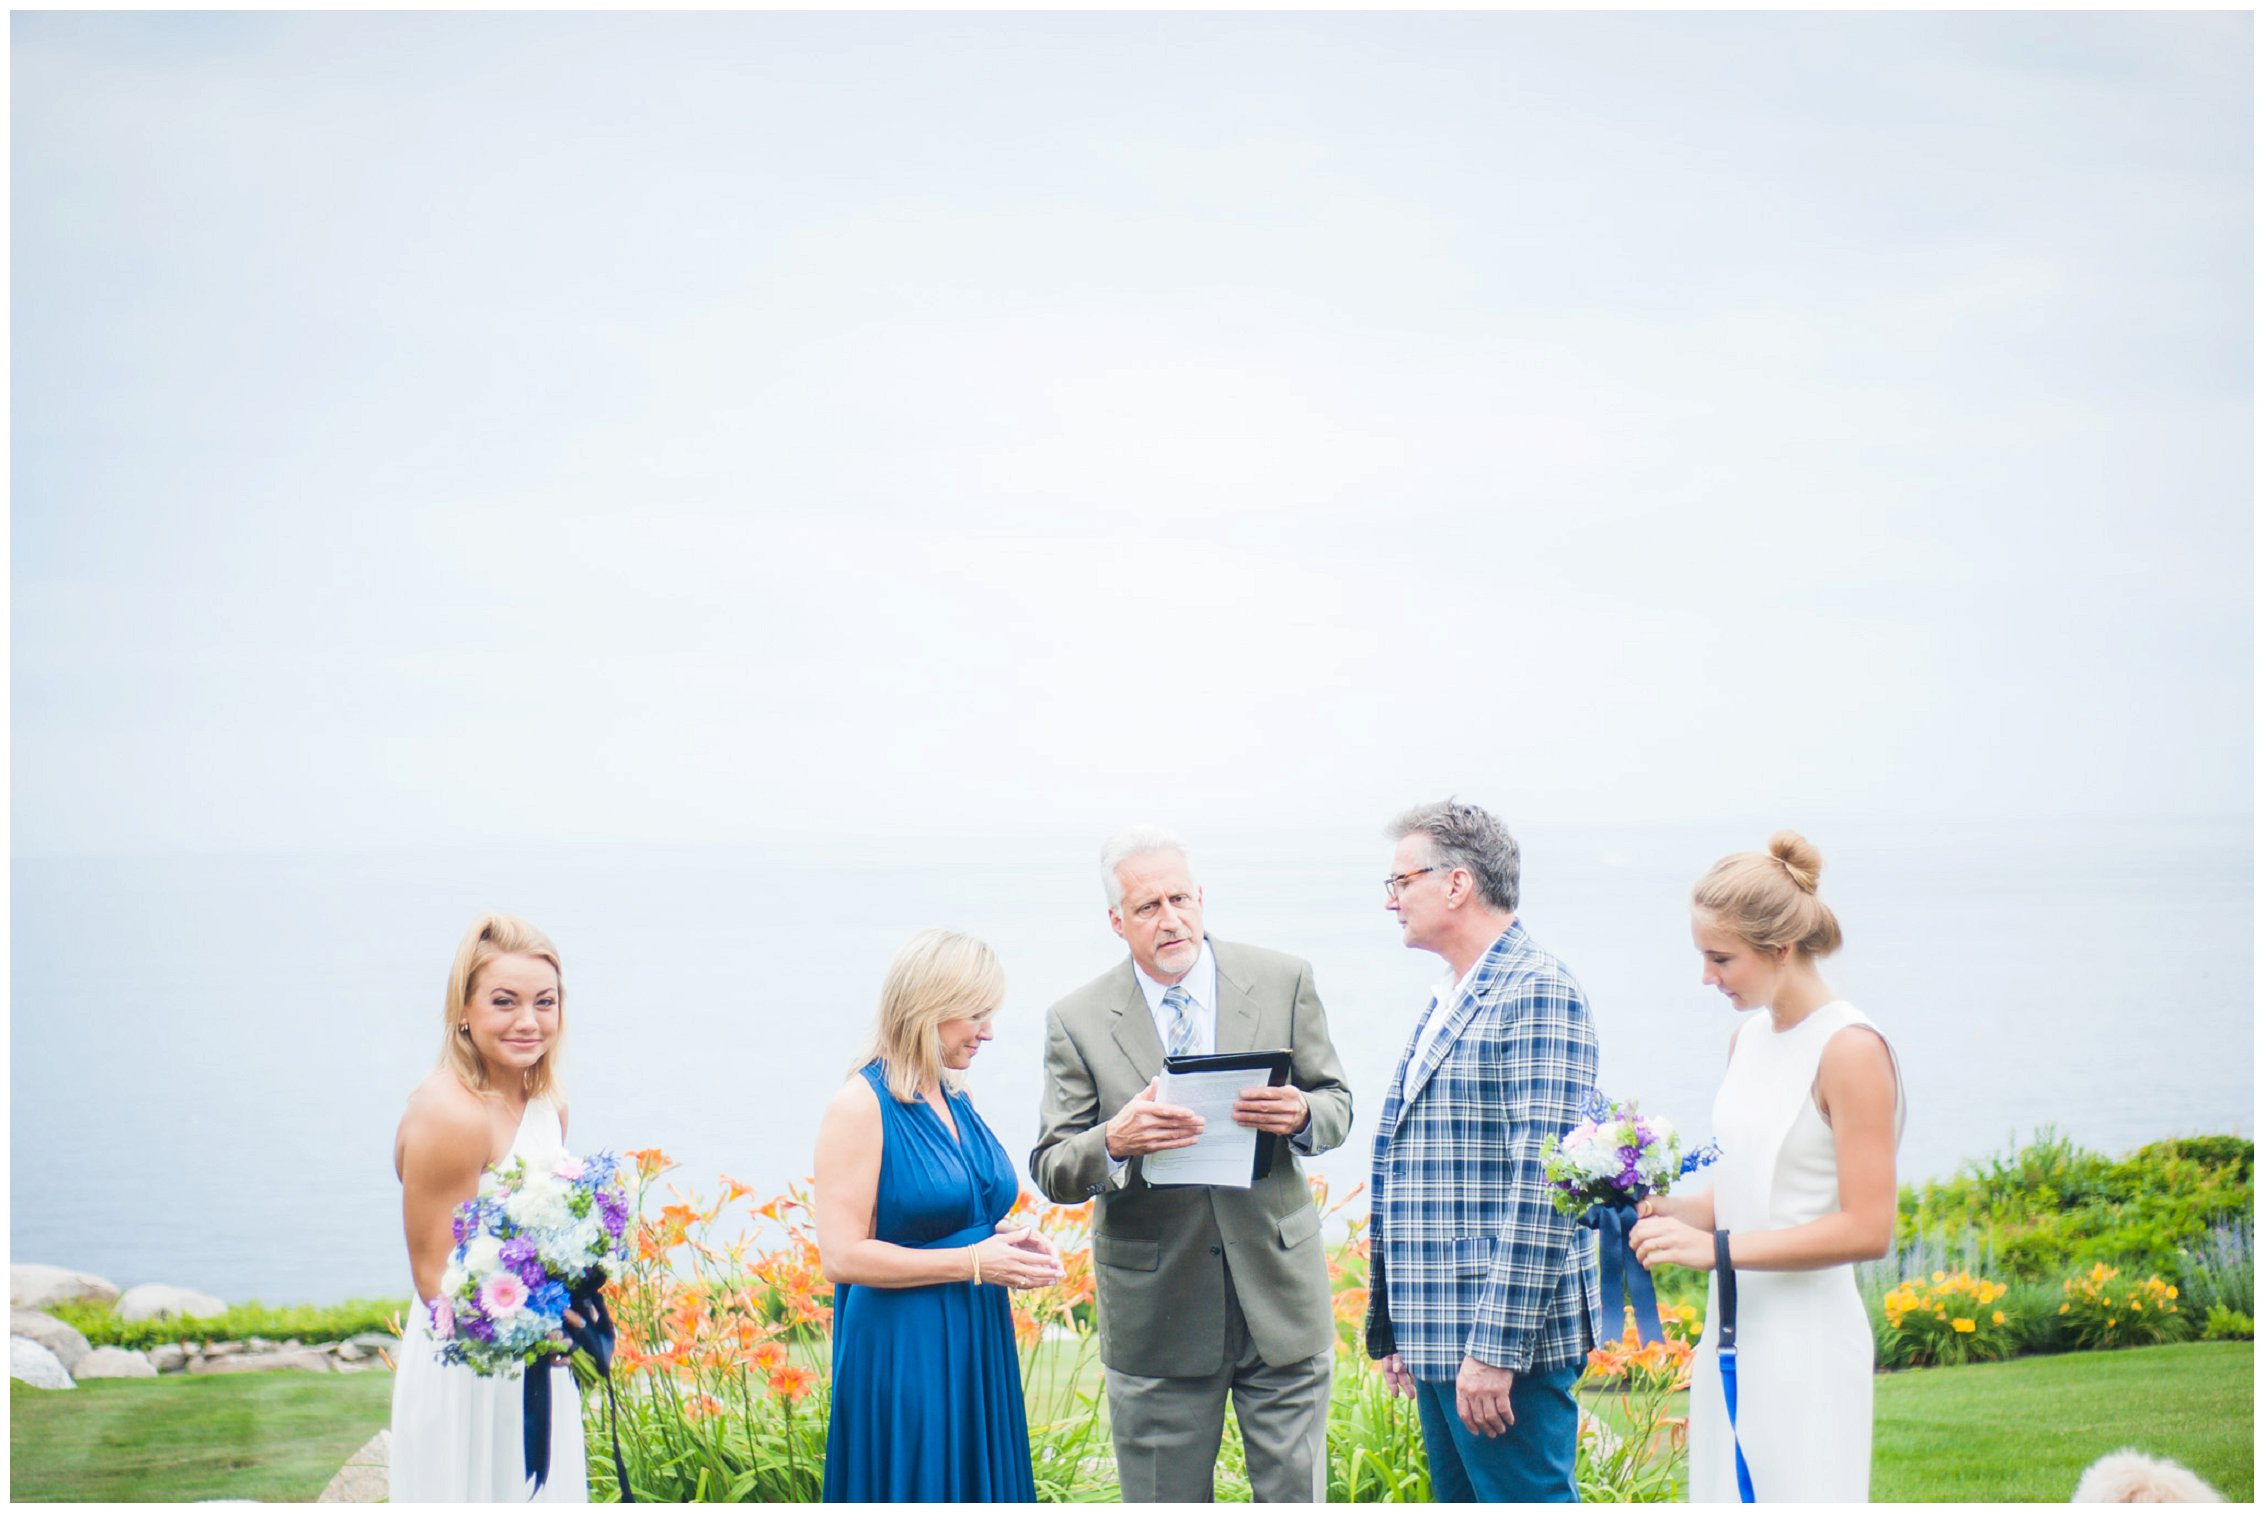 Rockport MA intimate wedding ceremony photography